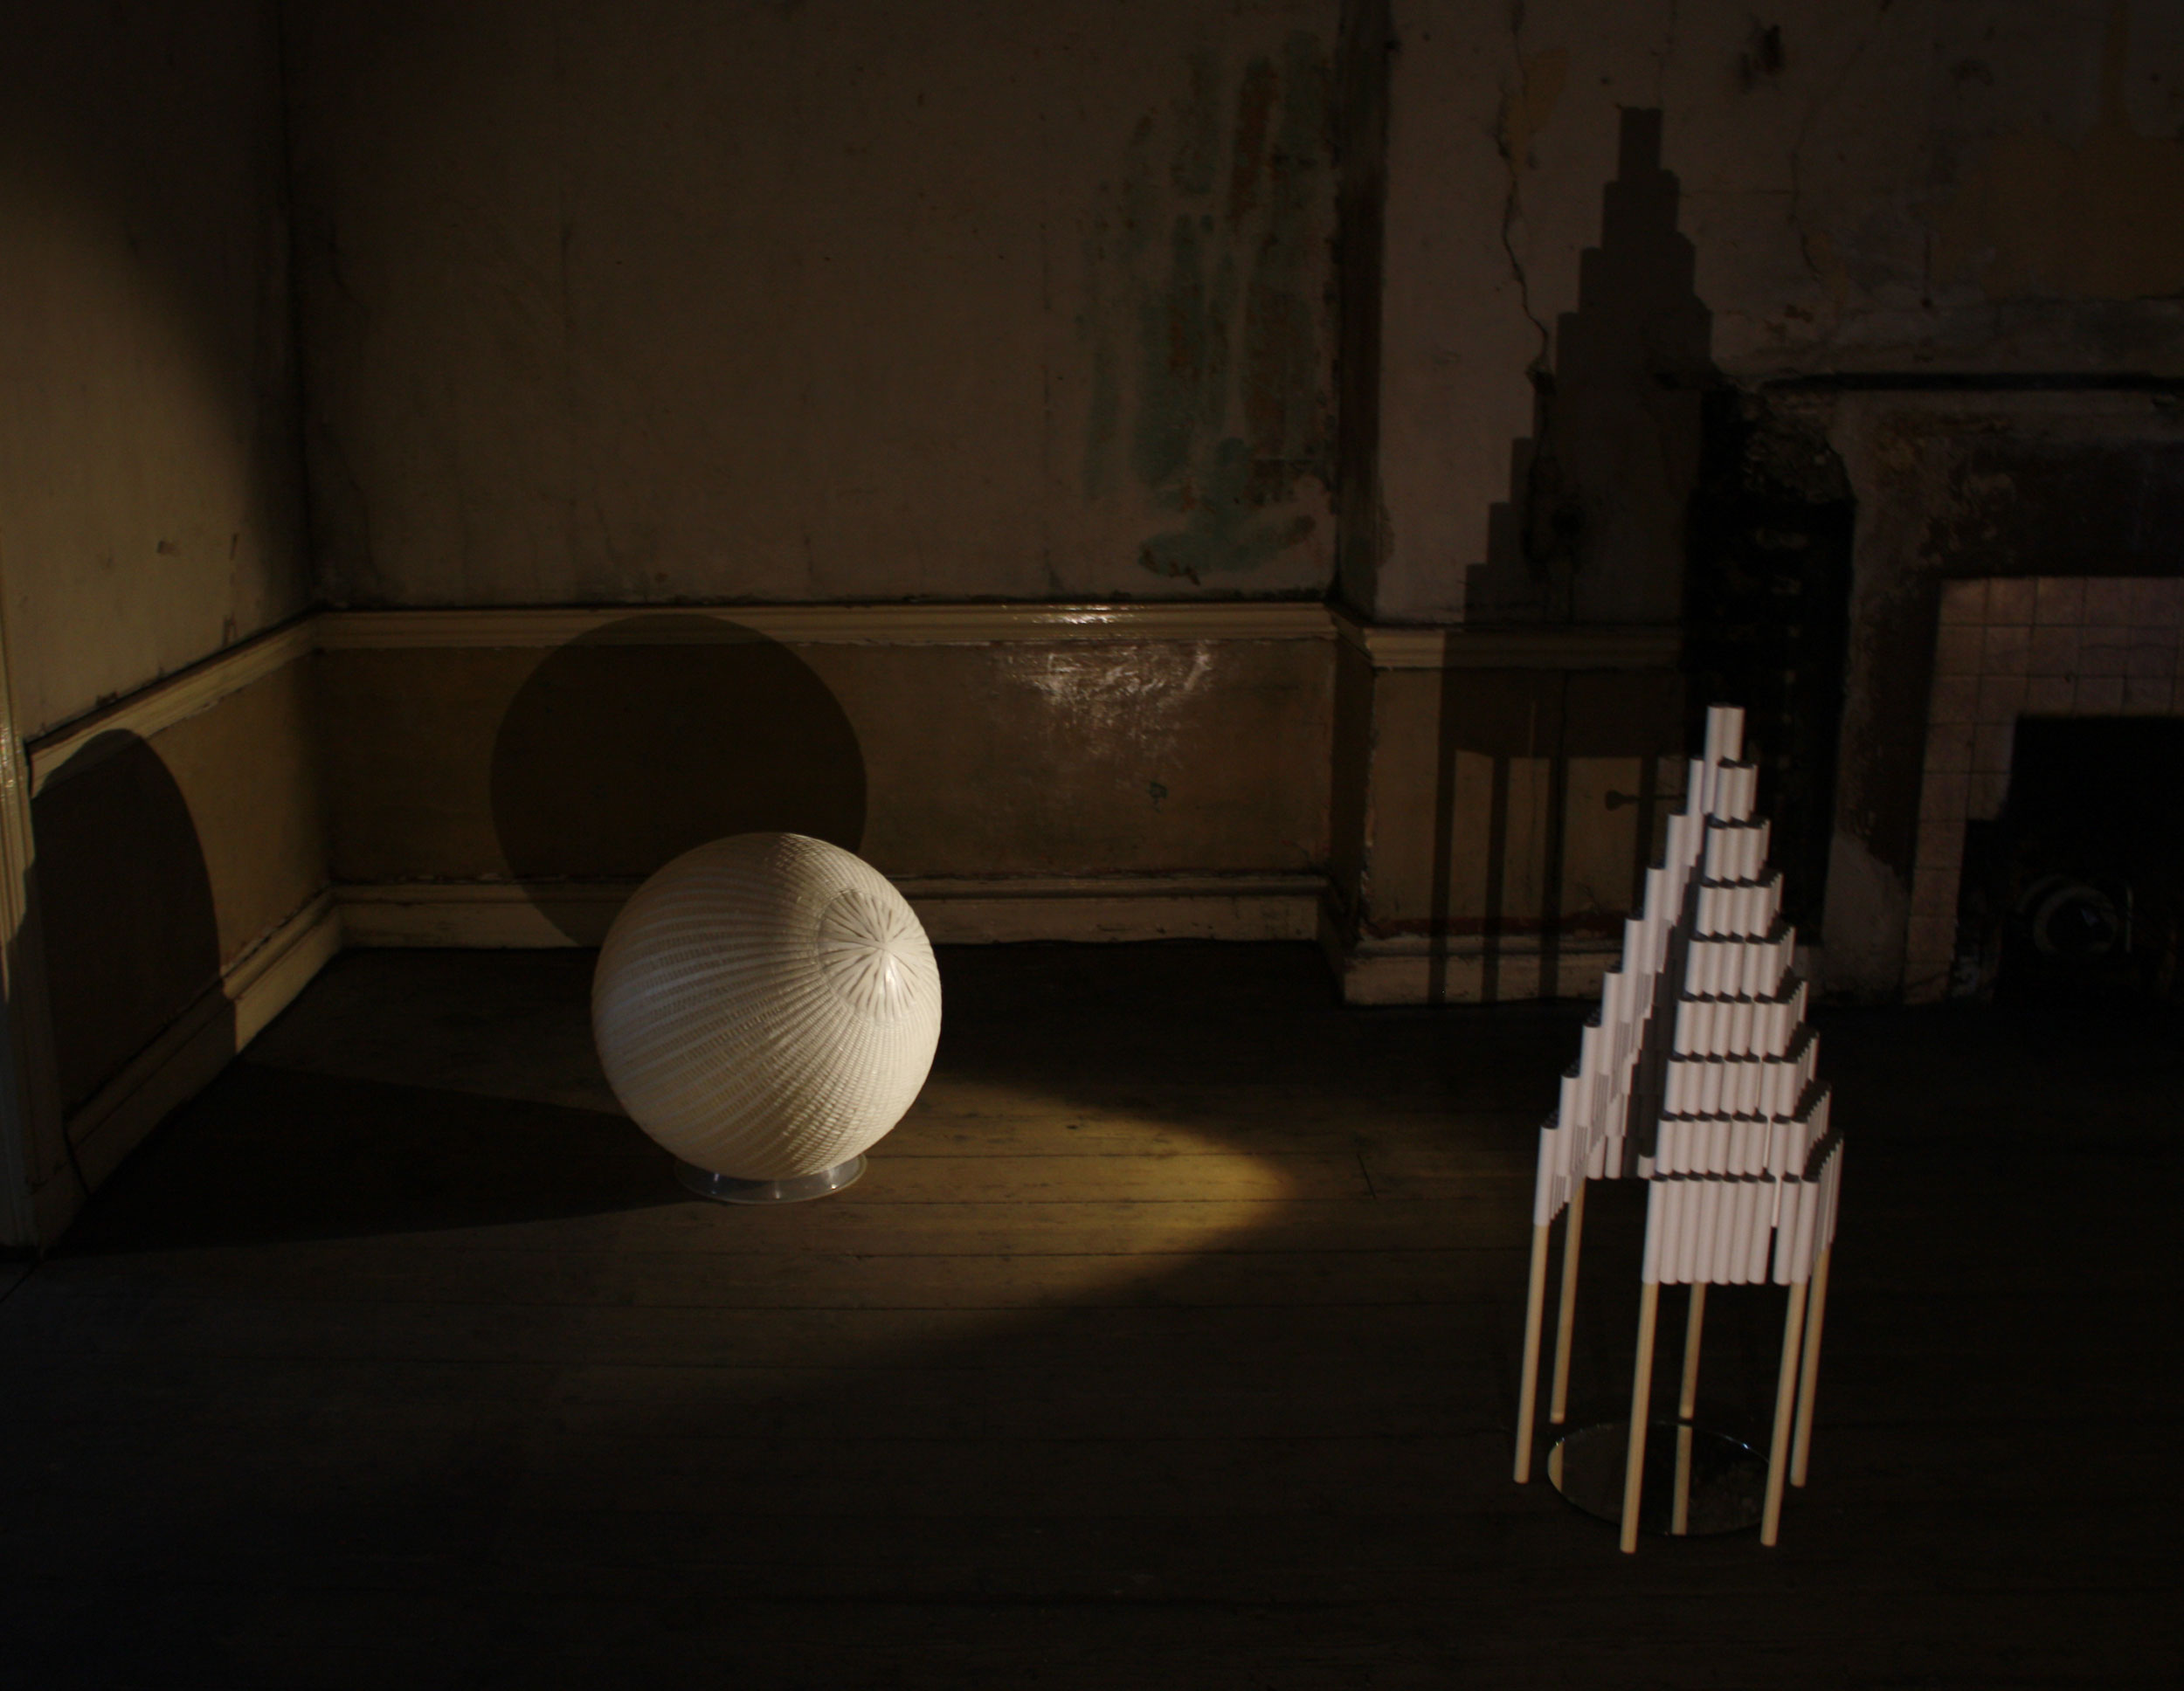 Installation view showing two  Untitled  sculptures